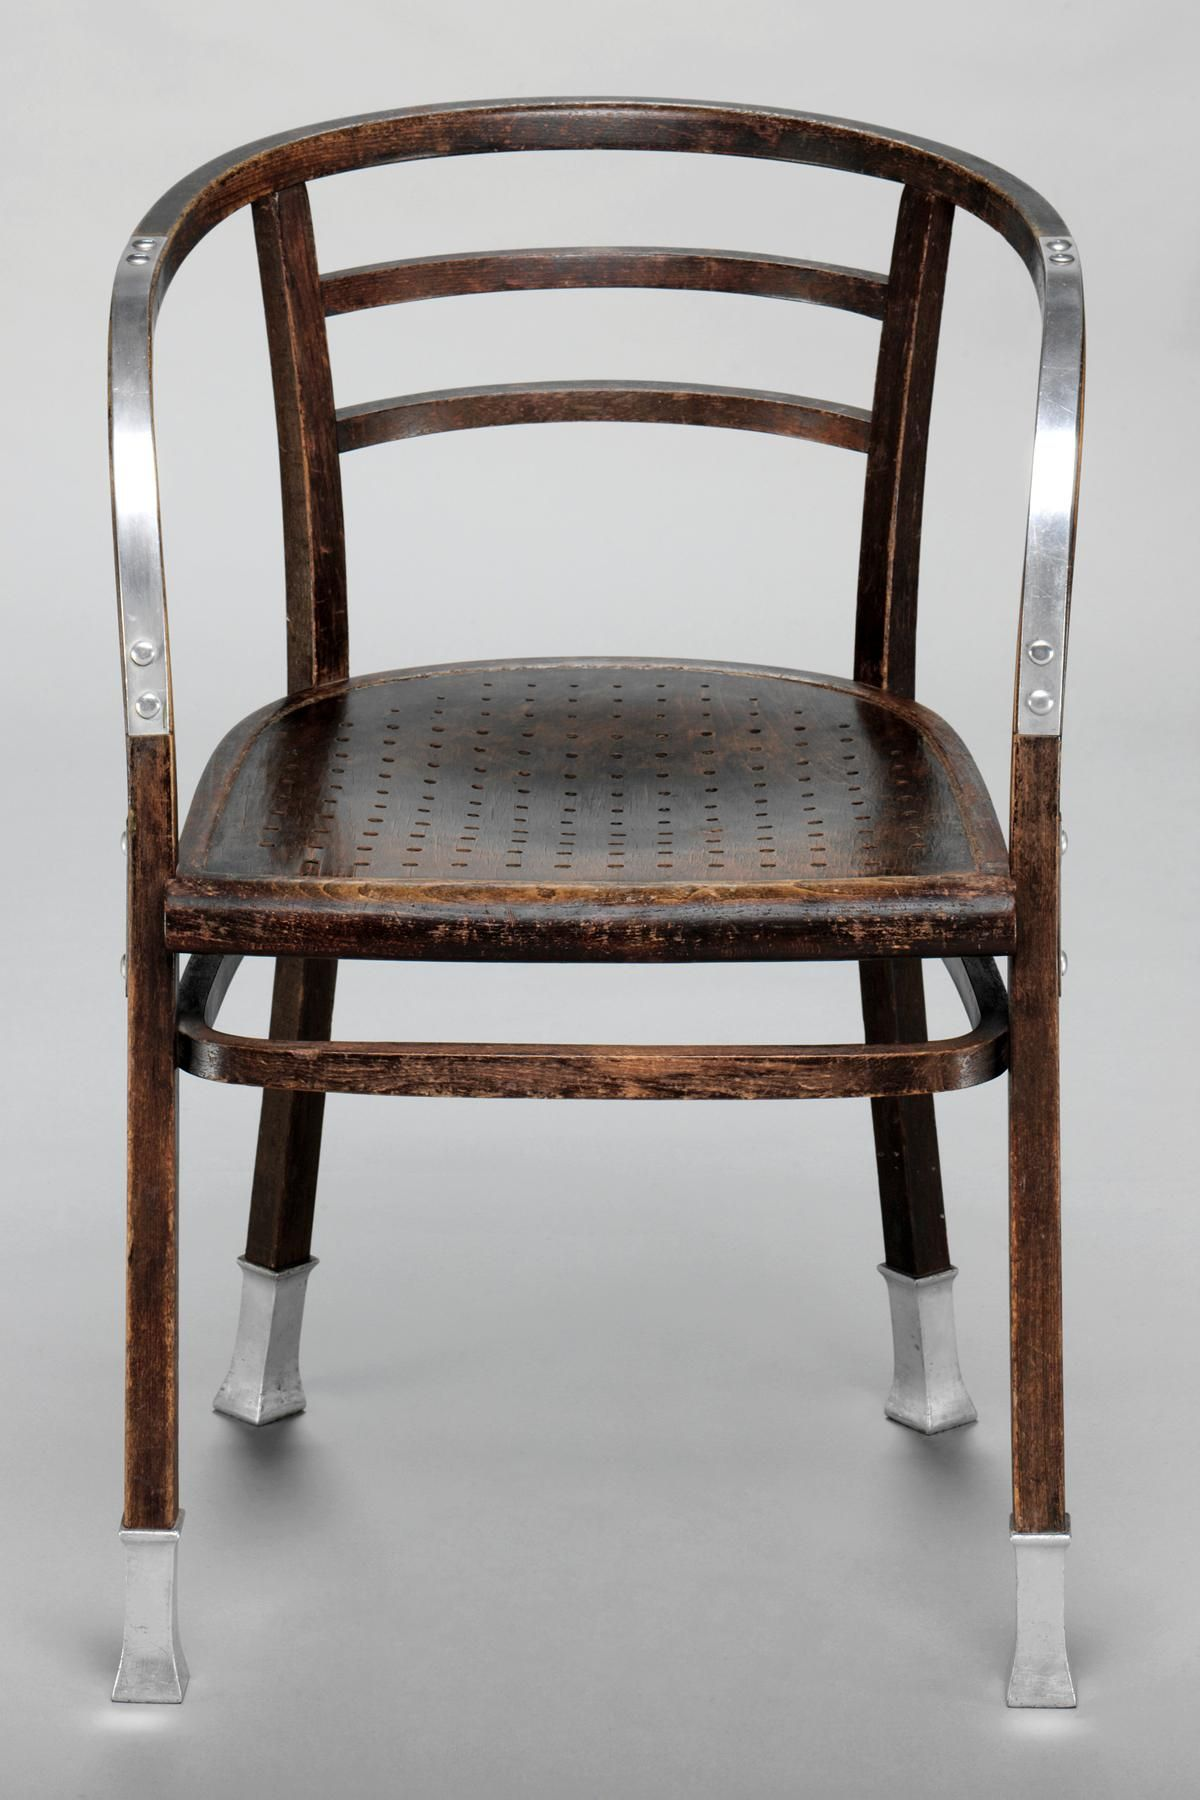 Otto Wagner Muebles - Armchair 721 By Otto Wagner[mjhdah]http://ranchoavellanas.com/wp-content/uploads/2018/02/strikingly-design-wagner-furniture-armchair-by-otto-for-thonet-1905-sale-at-pamono.jpg